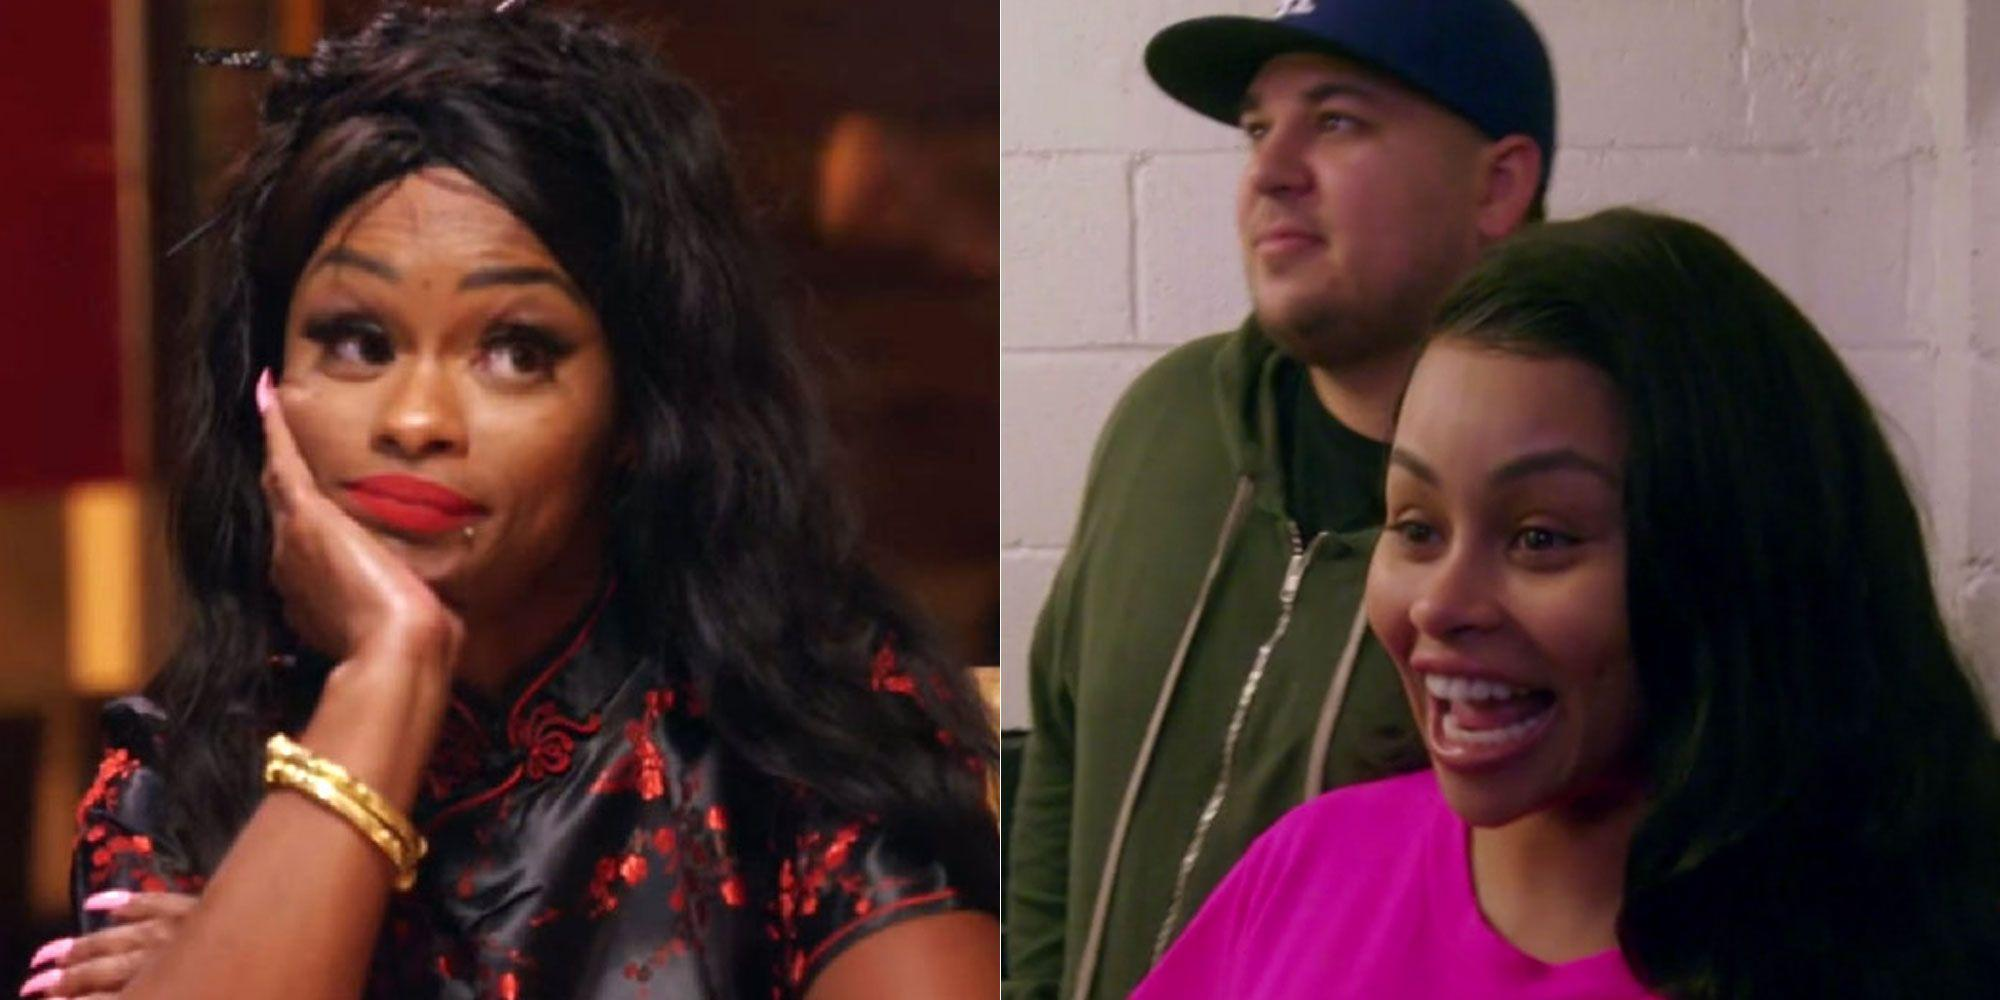 Blac Chyna's Teaser Video For Her Mom, Tokyo Toni's TV Show Has Fans Freaking Out